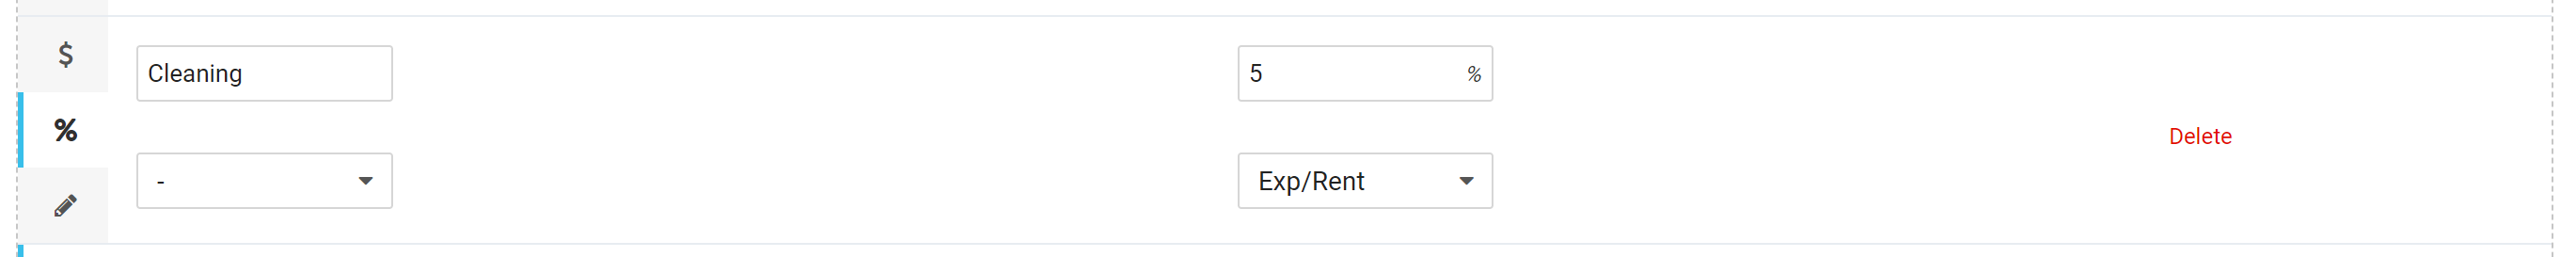 Add Expense (%) as Percent Value